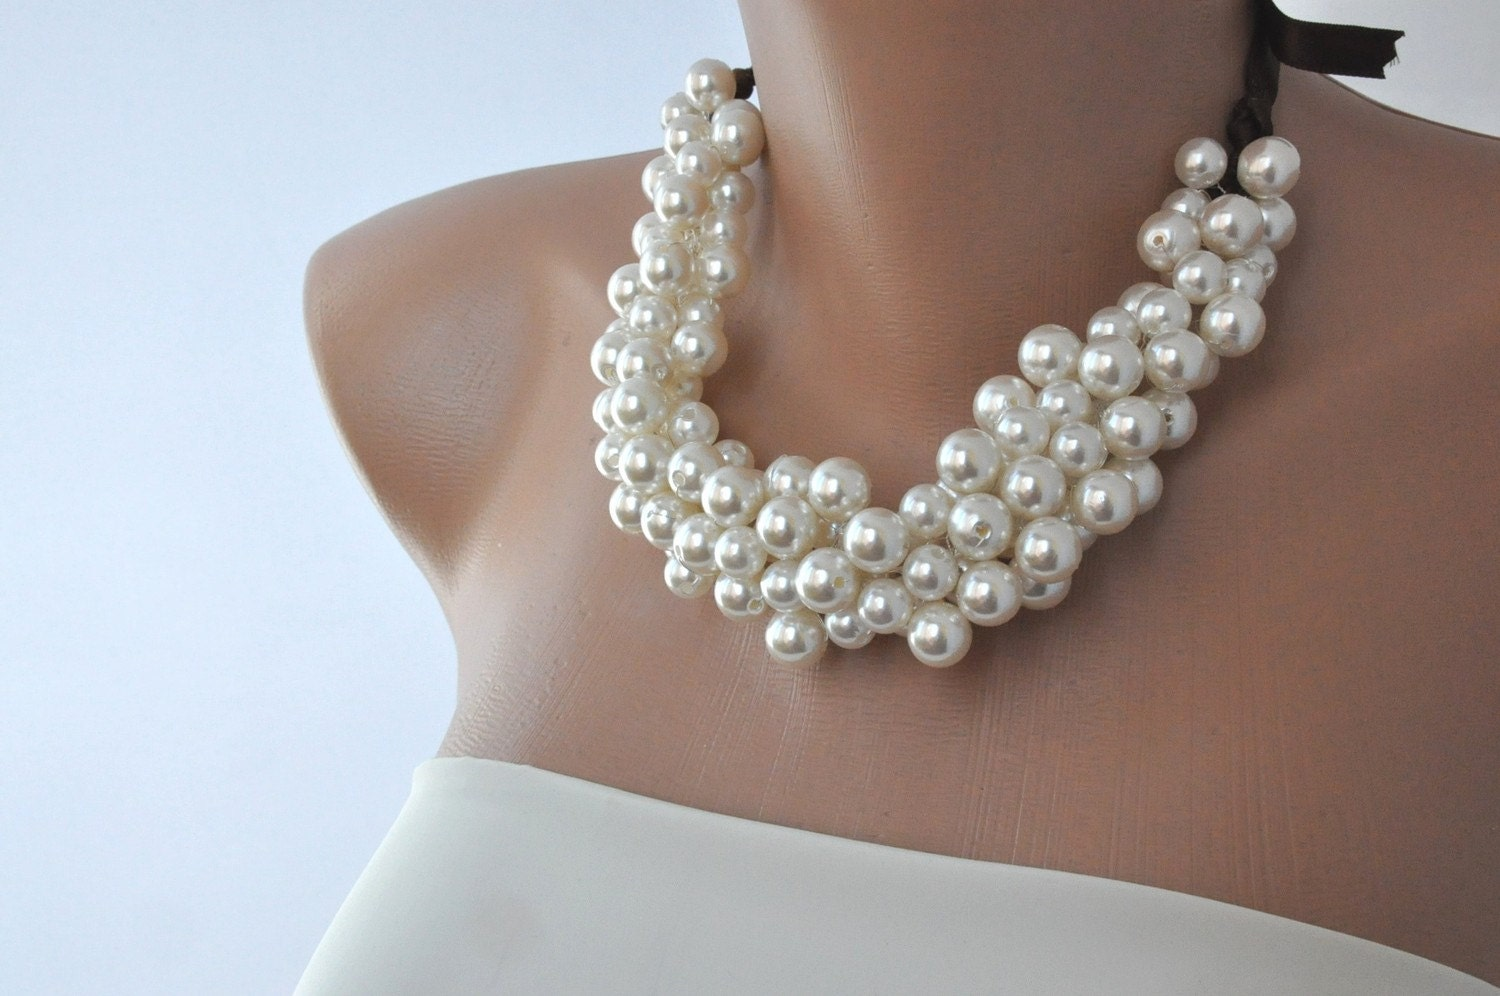 Handmade Wedding Jewellery Ideas : Chunky pearl bridal necklaceivory choker necklace